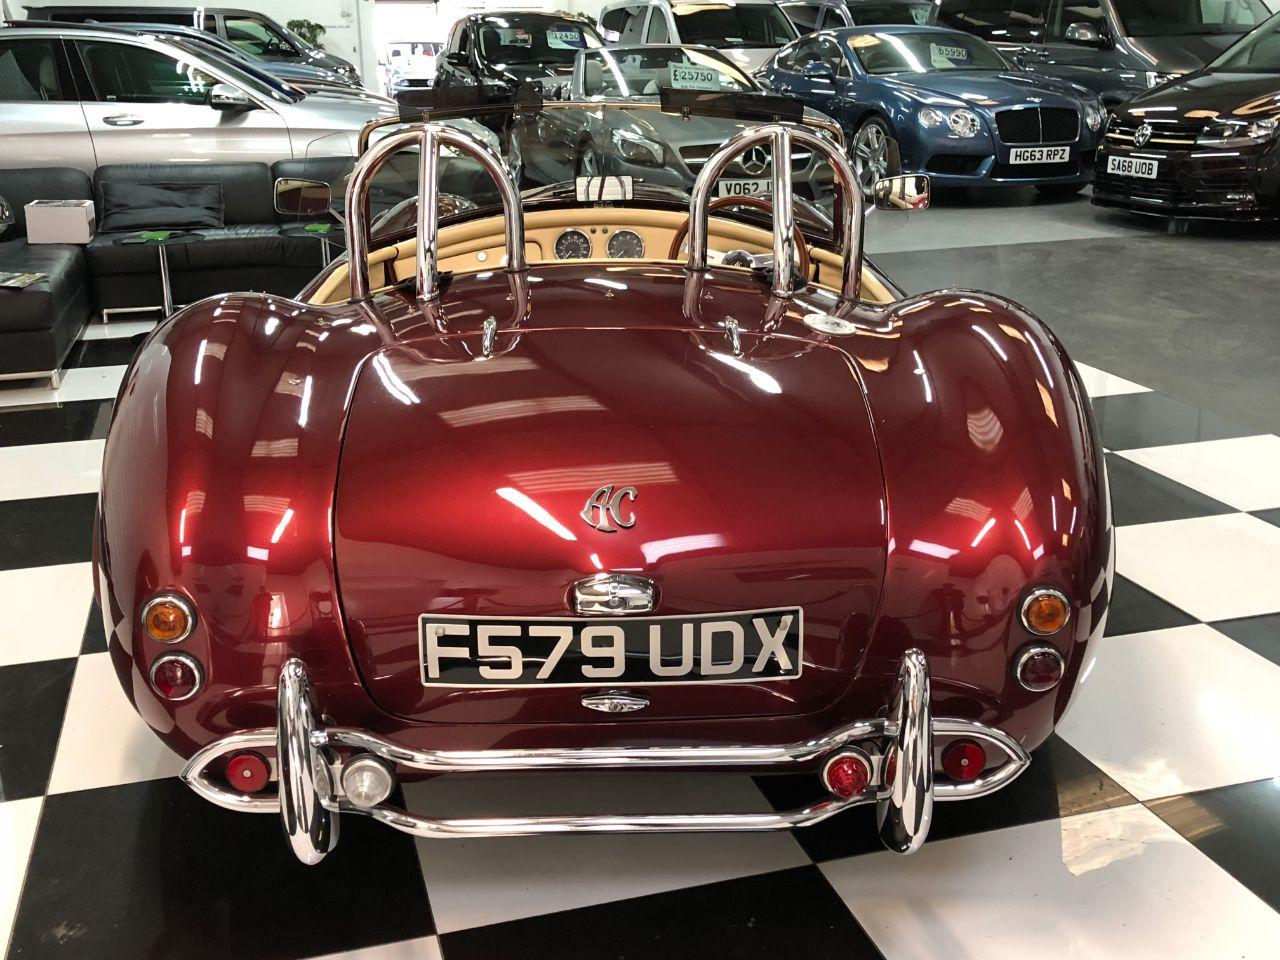 AC Cobra Dax 6.3 V8 Manual Sports Petrol Ruby Red